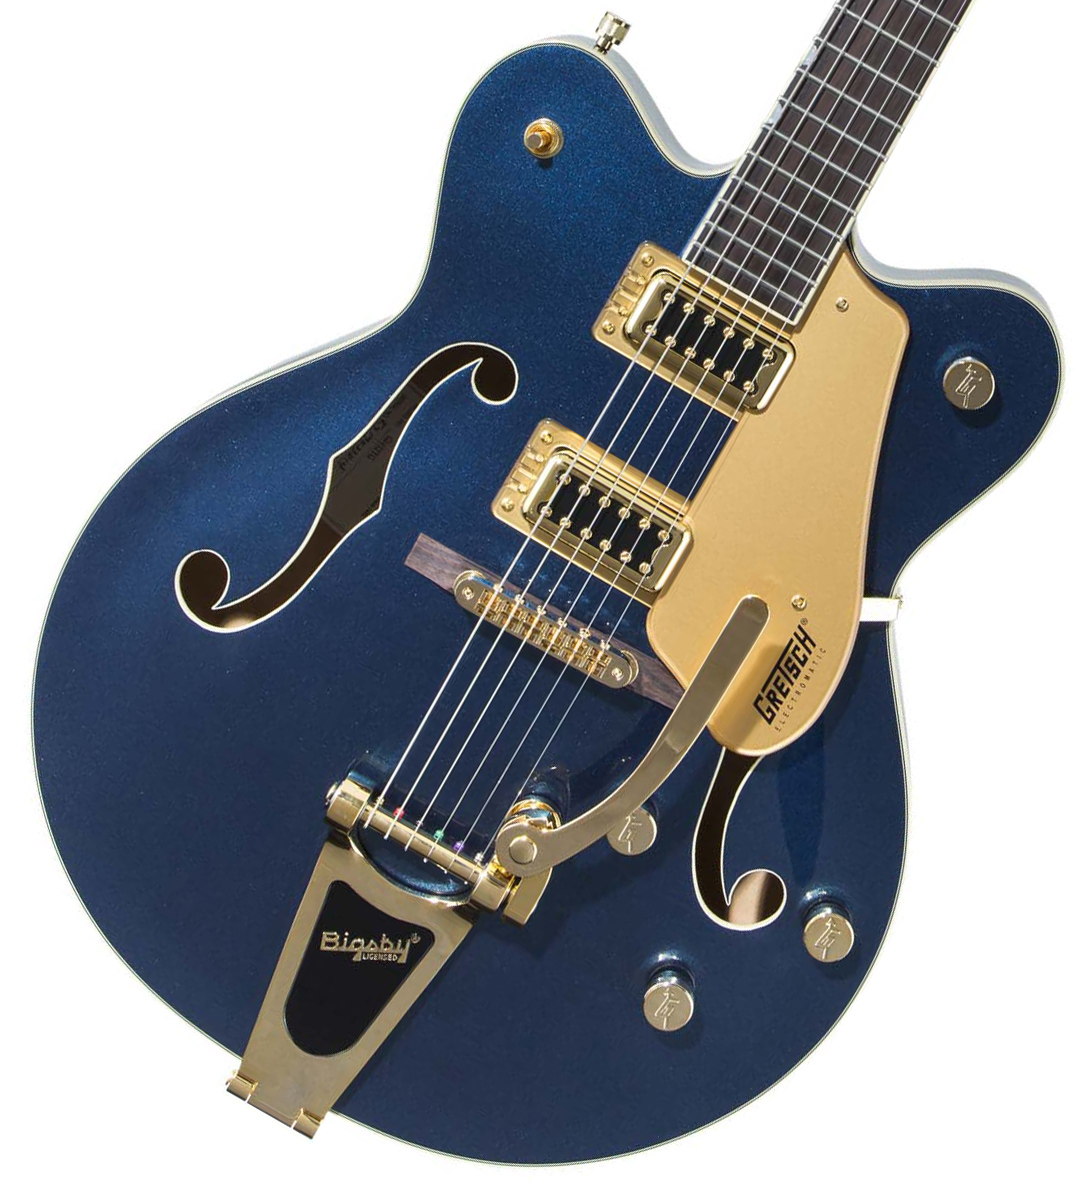 Grestch / G5422TG Limited Edition Electromatic Hollow Body Double-Cut with Bigsby グレッチ